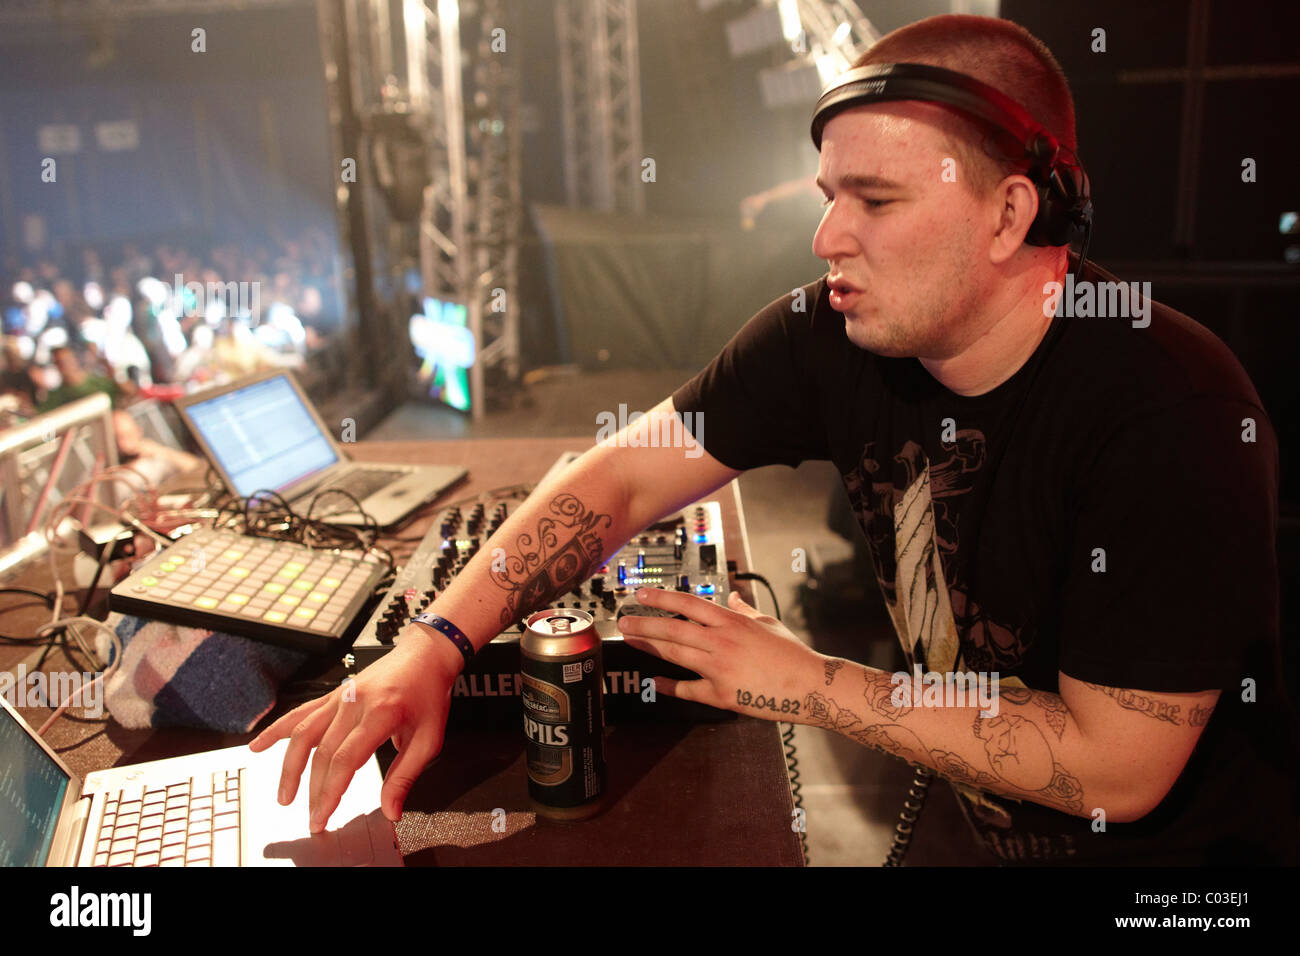 Sven Wittekind, Nature One 2010 electronic music festival, Kastellaun, Rhineland-Palatinate, Germany, Europe - Stock Image